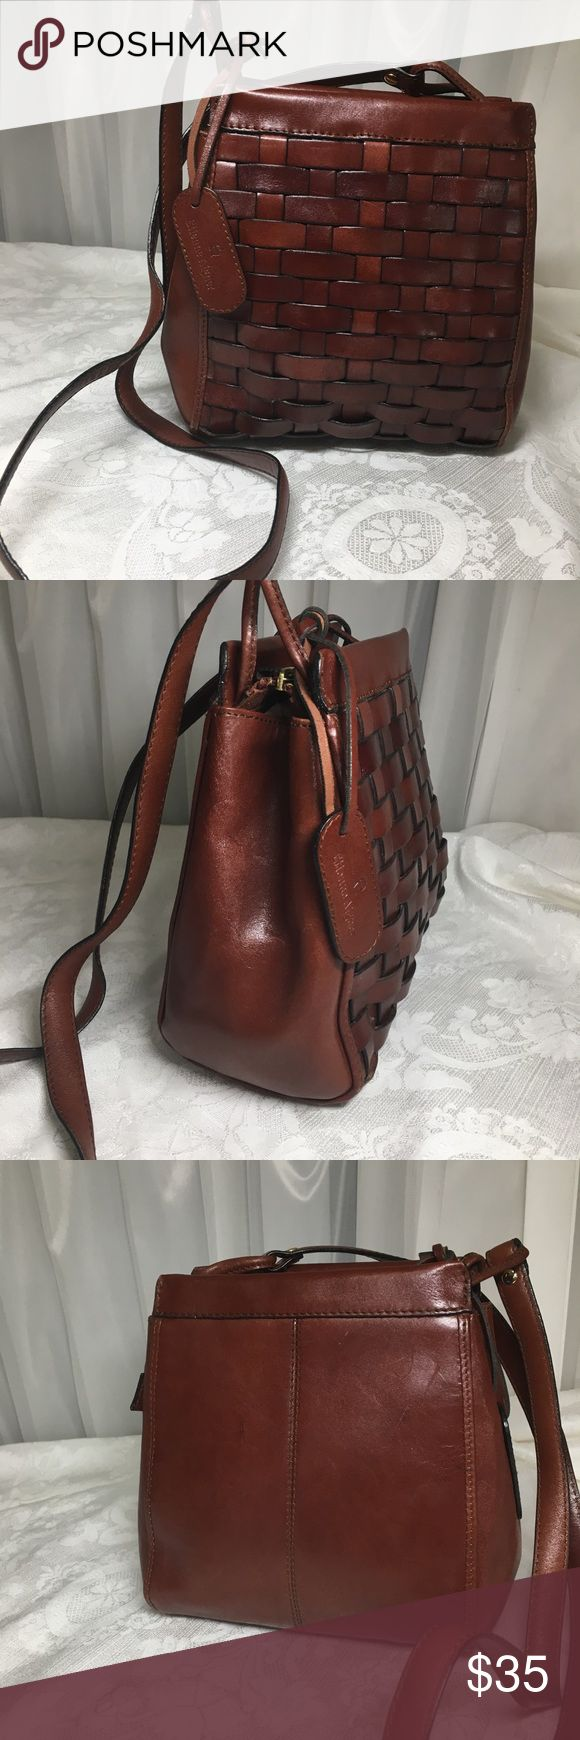 "Etienne Aigner Vintage Woven Brown Leather bag Etienne Aigner Vintage Woven Leather Crossbody bag. Genuine Leather. It looks phenomenal. Minor wear appropriate with age.. Purse has only one  compartment. No stains, no tears or rips. Made in china. 8"" W x 9 1/2"" H 3 1/2""D Etienne Aigner Bags"